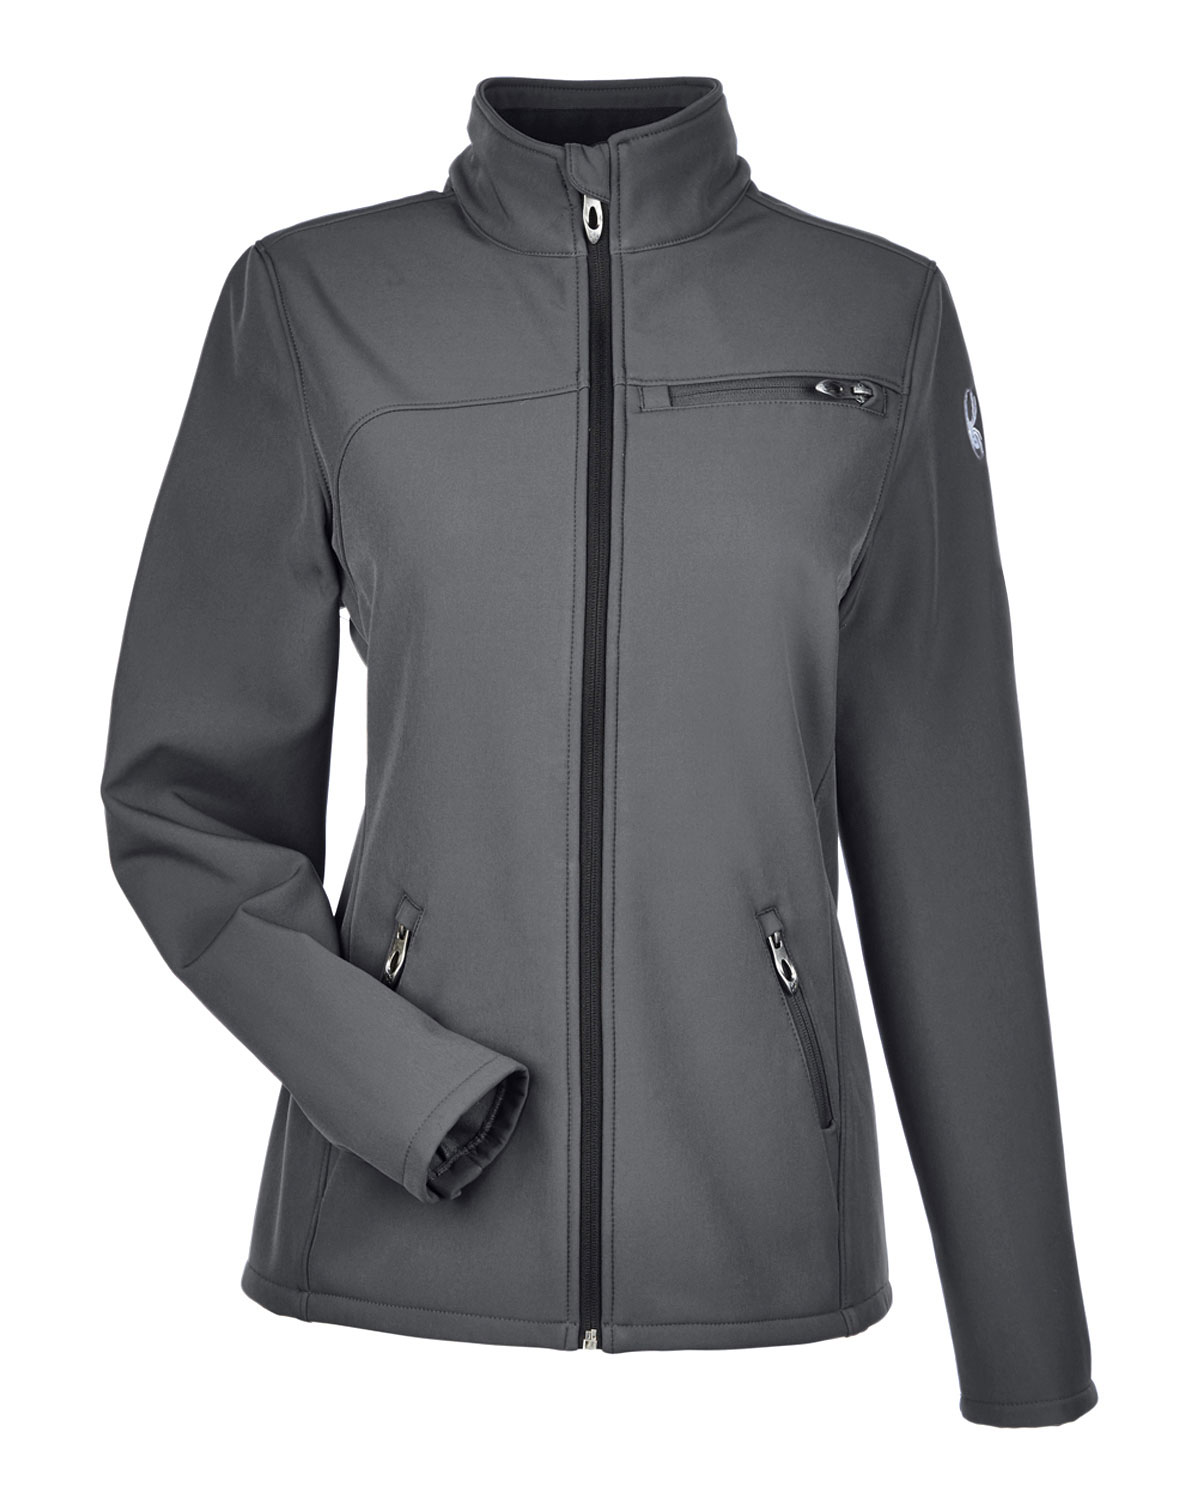 Spyder Ladies Transport Softshell Jacket